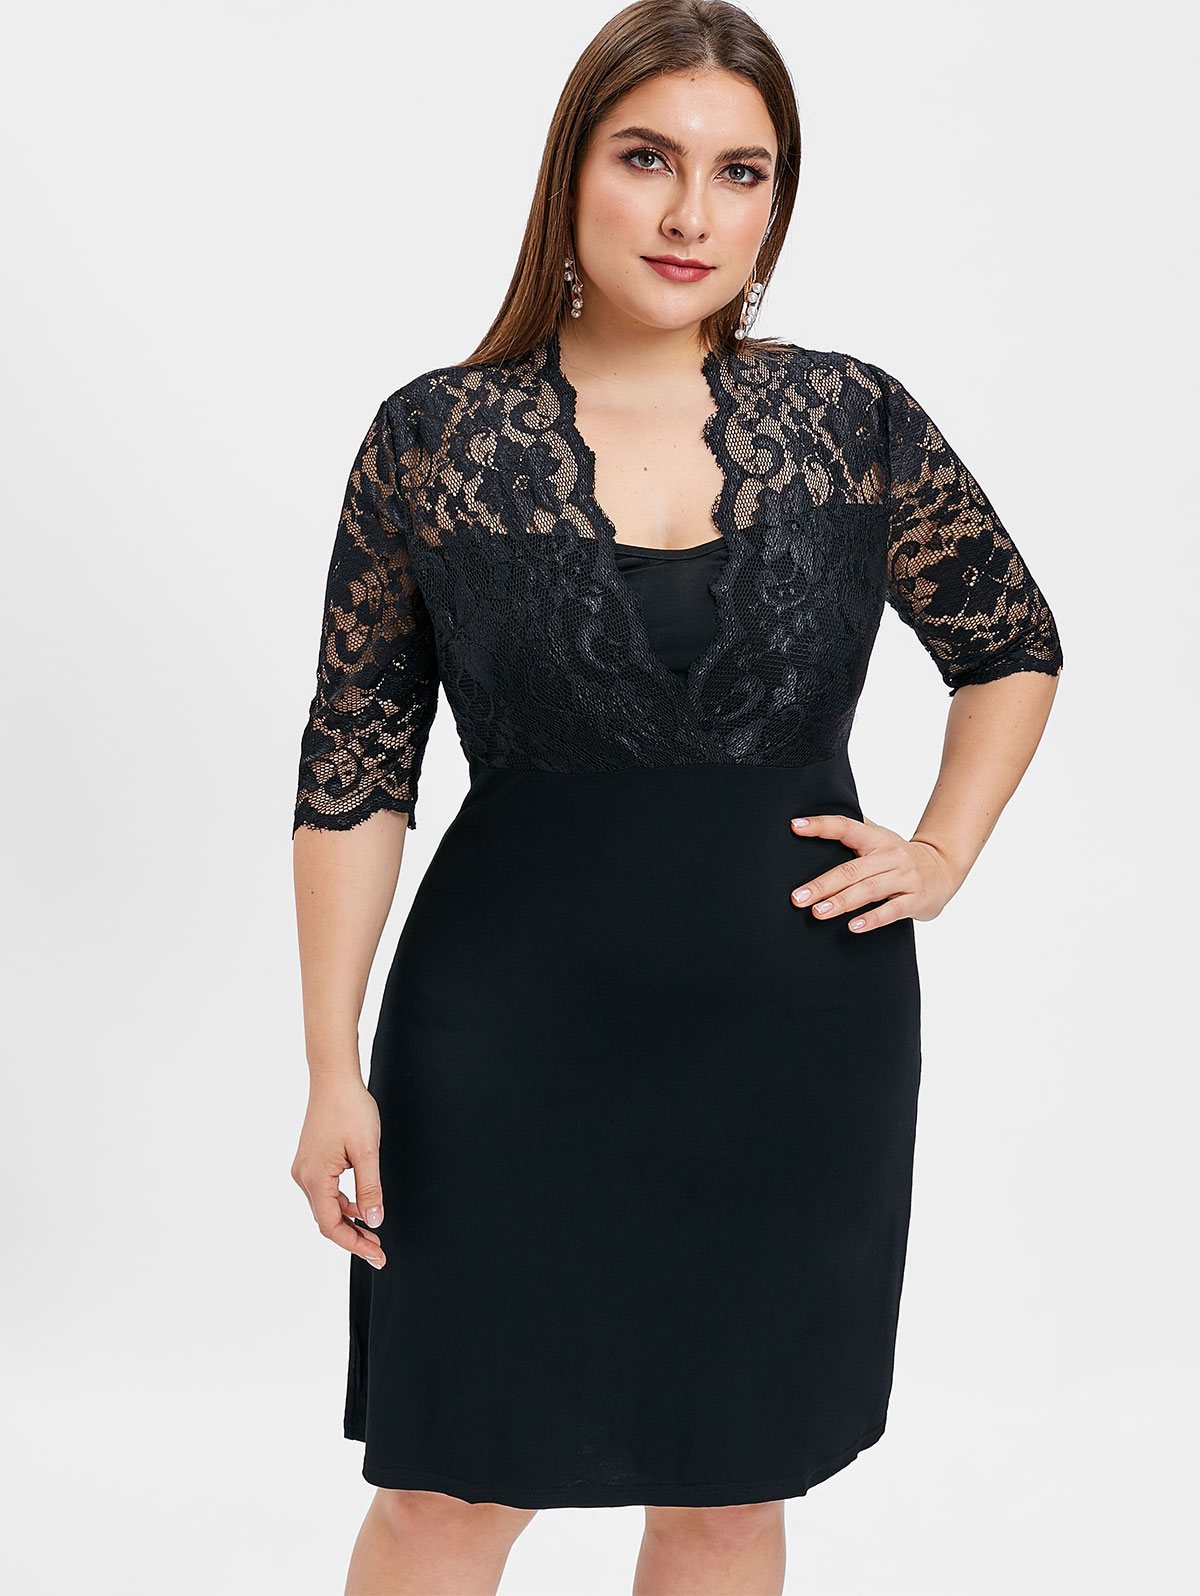 dcc6ed052b9d1 Wipalo 2018 Autumn Plus Size Embroidery Bodycon Mermaid Party Dress ...